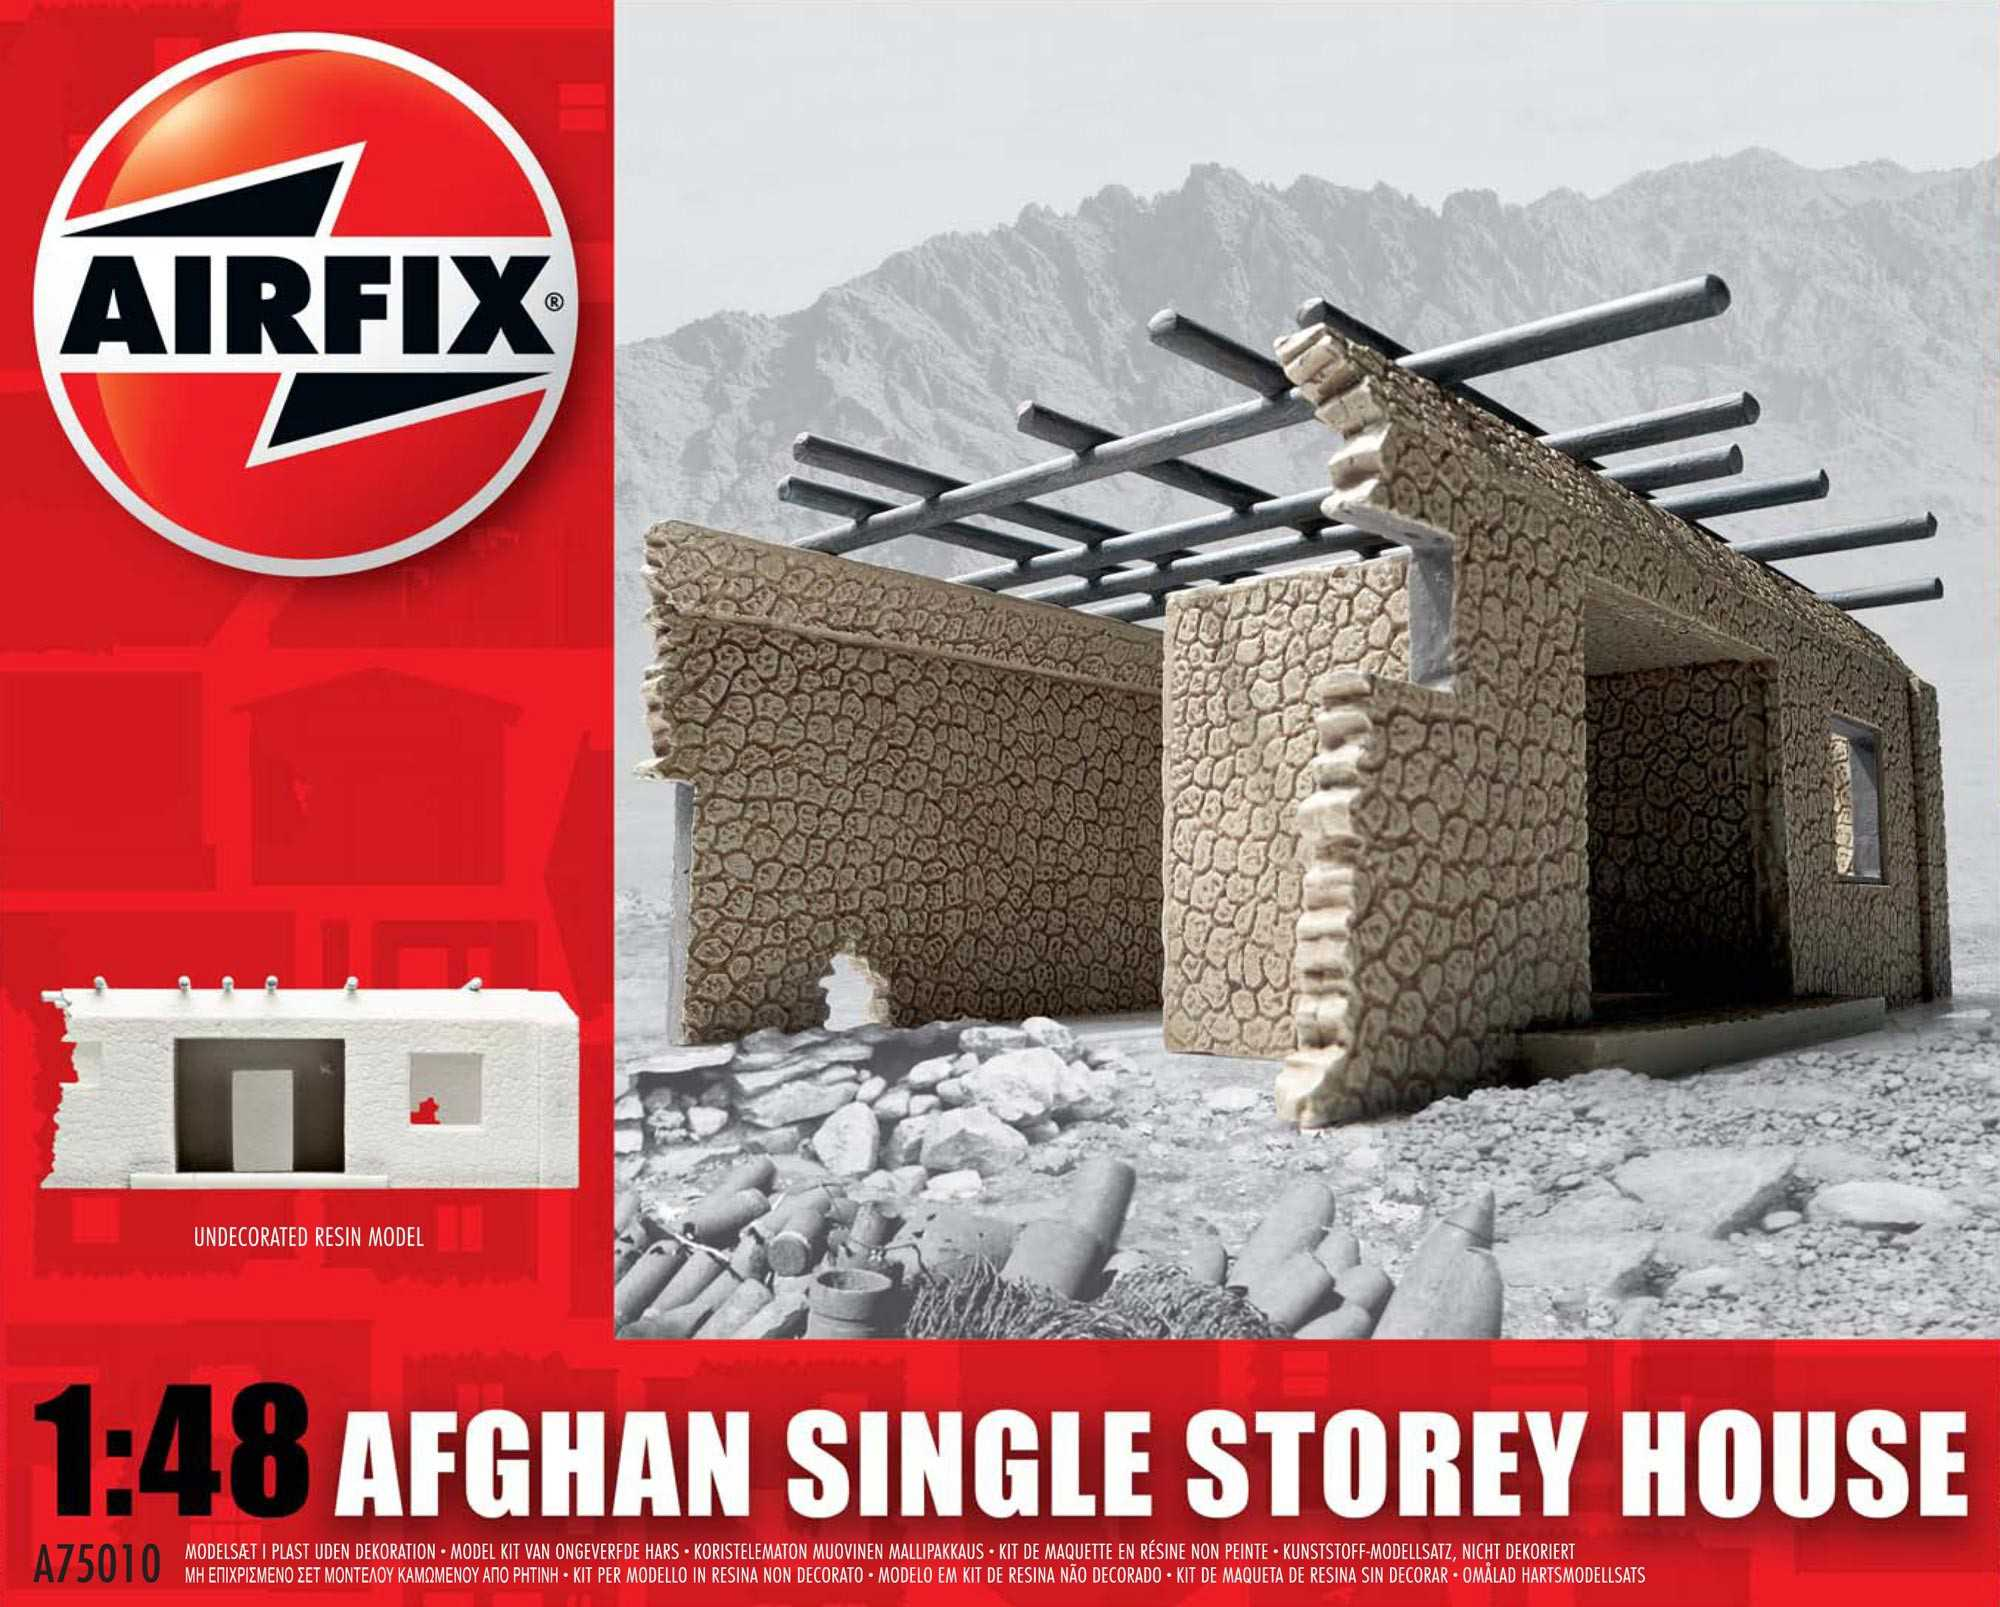 1:48 Afghan Single Storey House 1:48